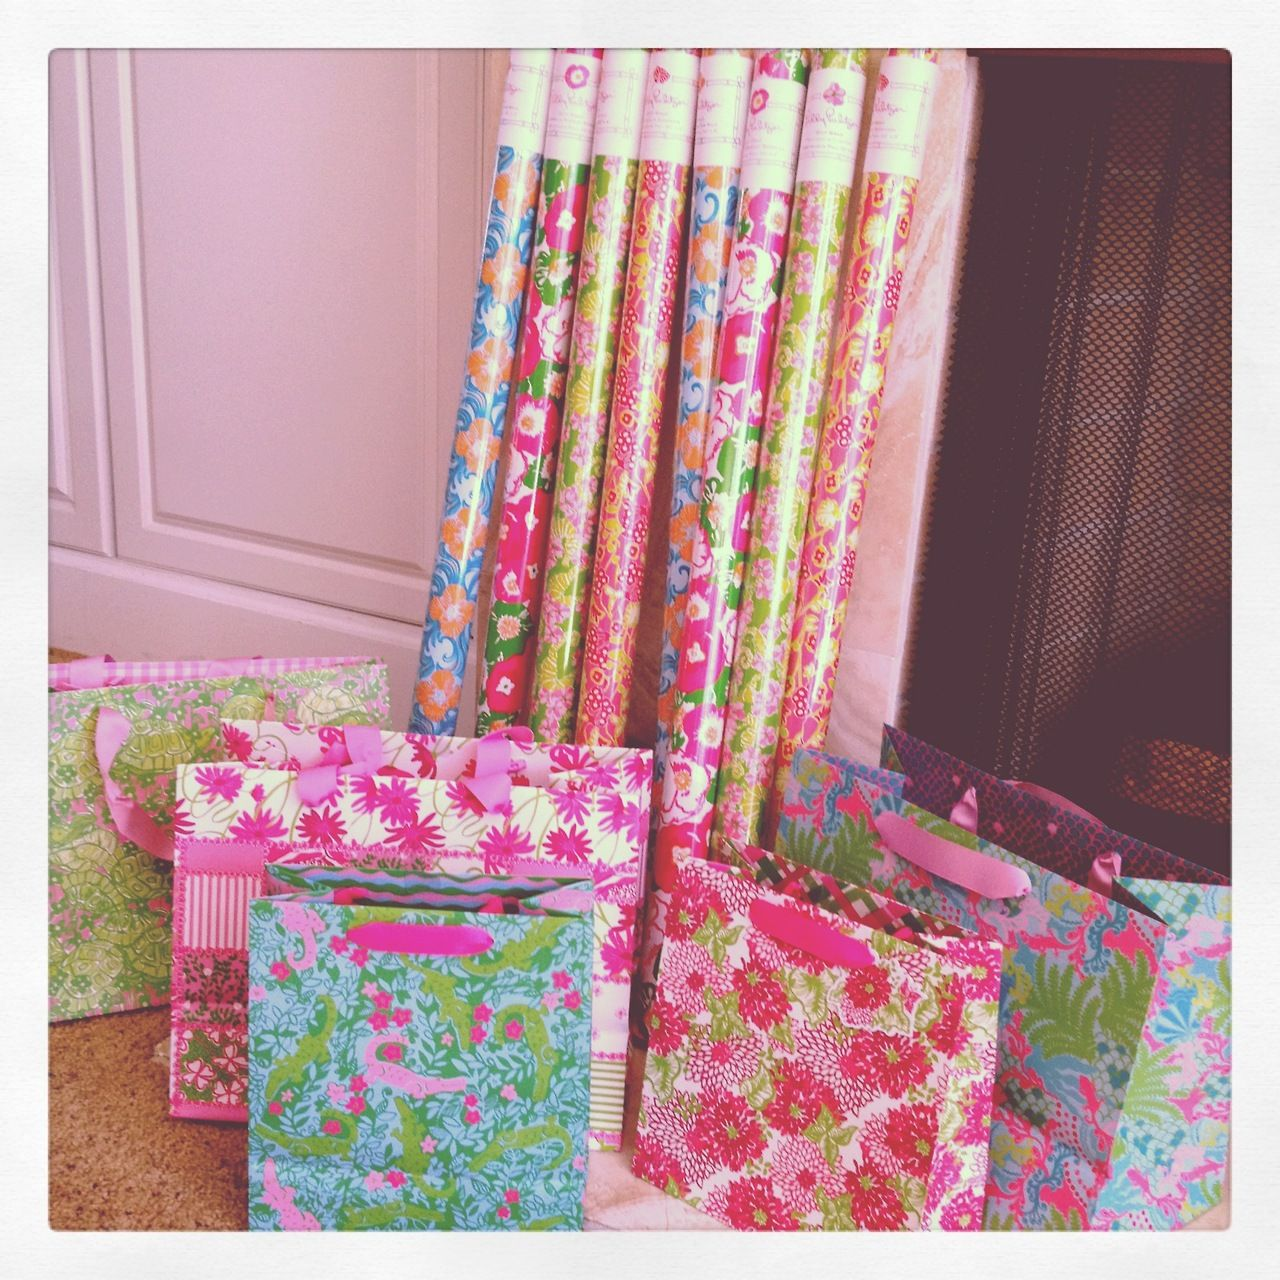 Lilly Paper and Bags - Just getting the bag would make this the most amazing present ever